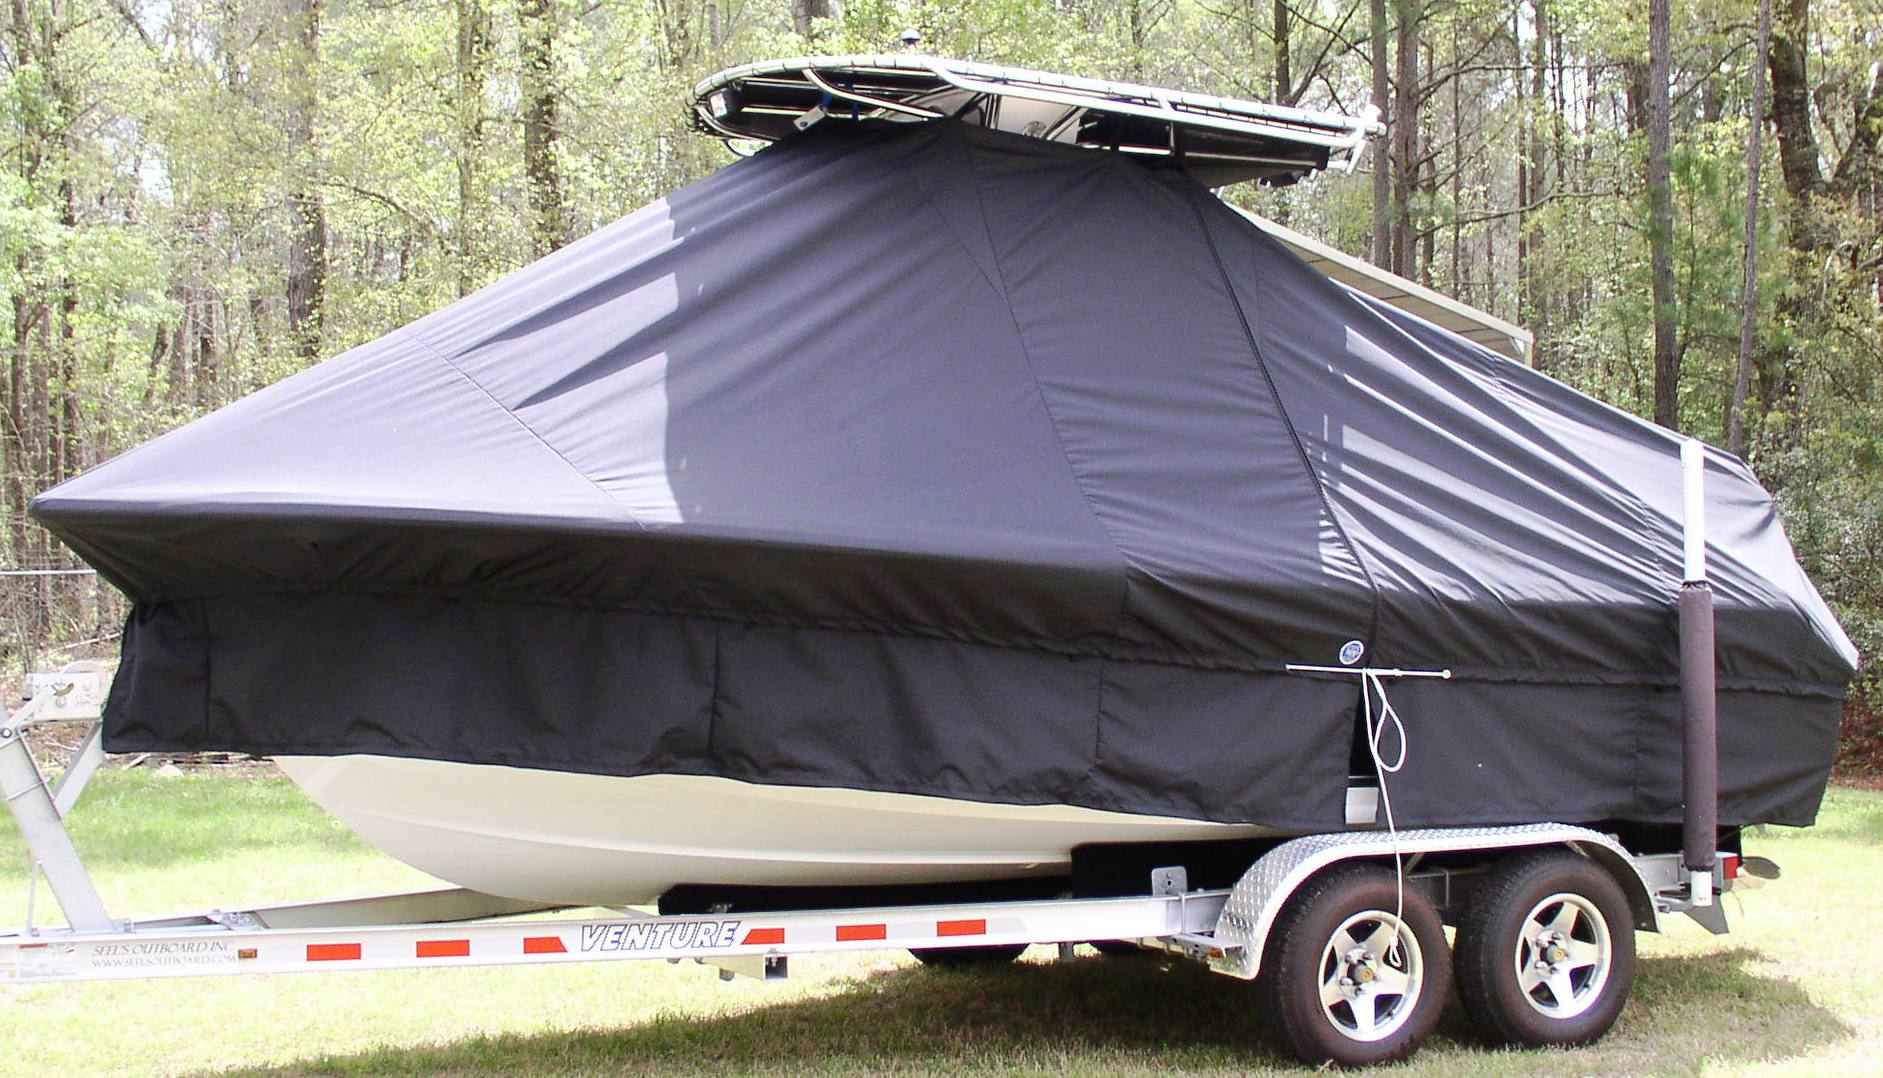 Sea Hunt Ultra 196, 20xx, TTopCovers™ T-Top boat cover with Extedned Skirts (No Longer Required), port side